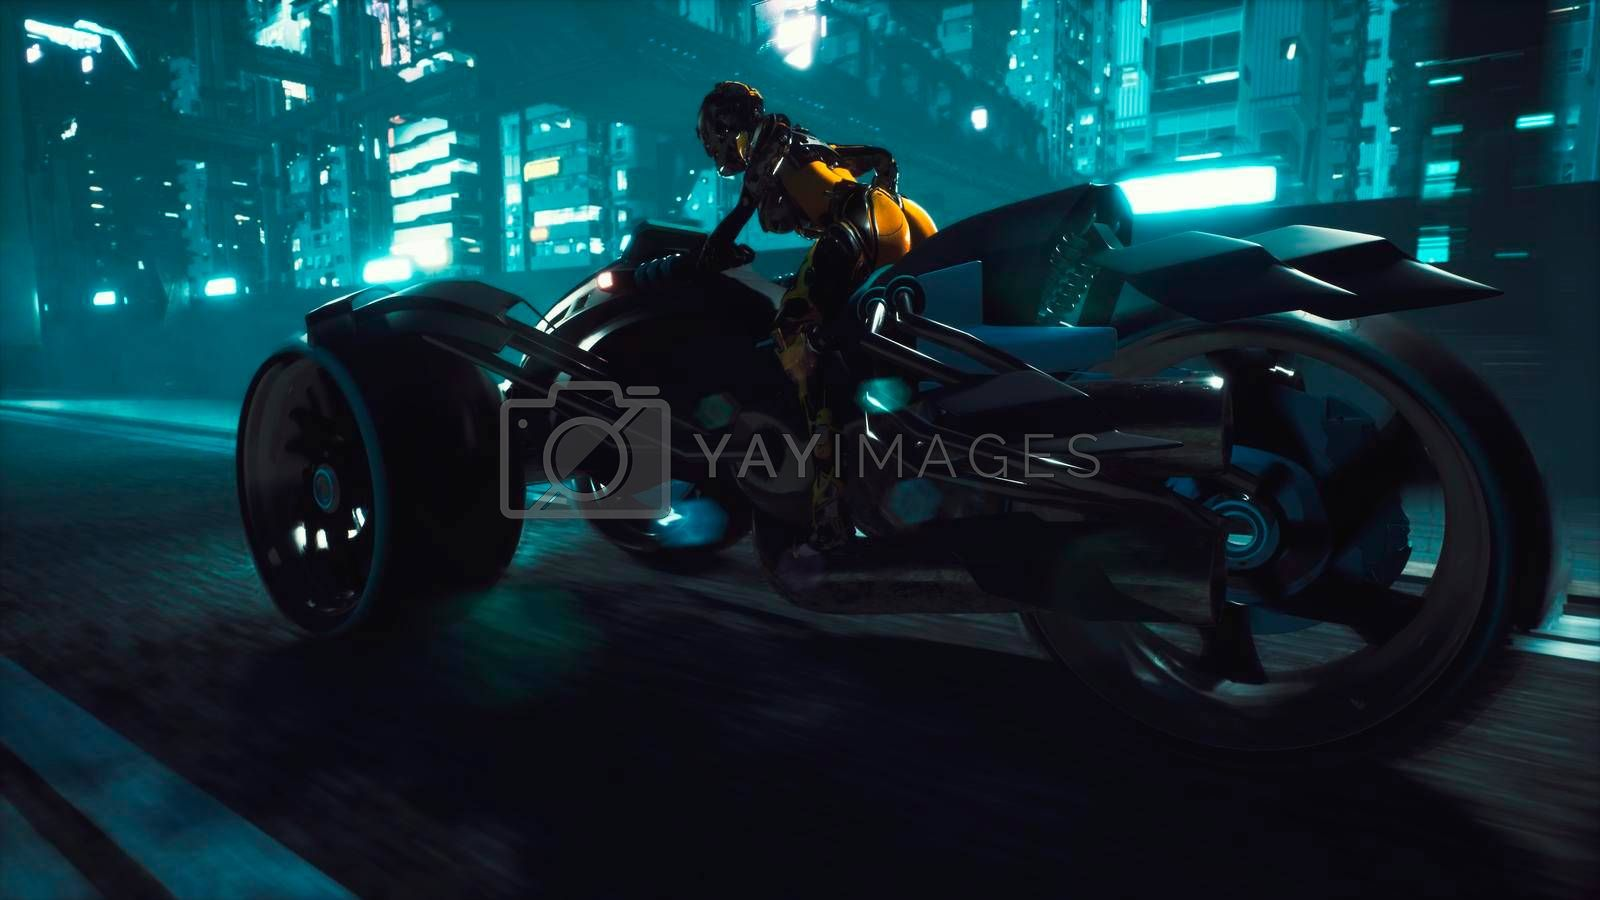 Cyborg rides a huge speed on the motorcycle of the future through the neon streets of the night cyber city. A view of the neon sci-Fi city. Post-apocalyptic cyber world concept.